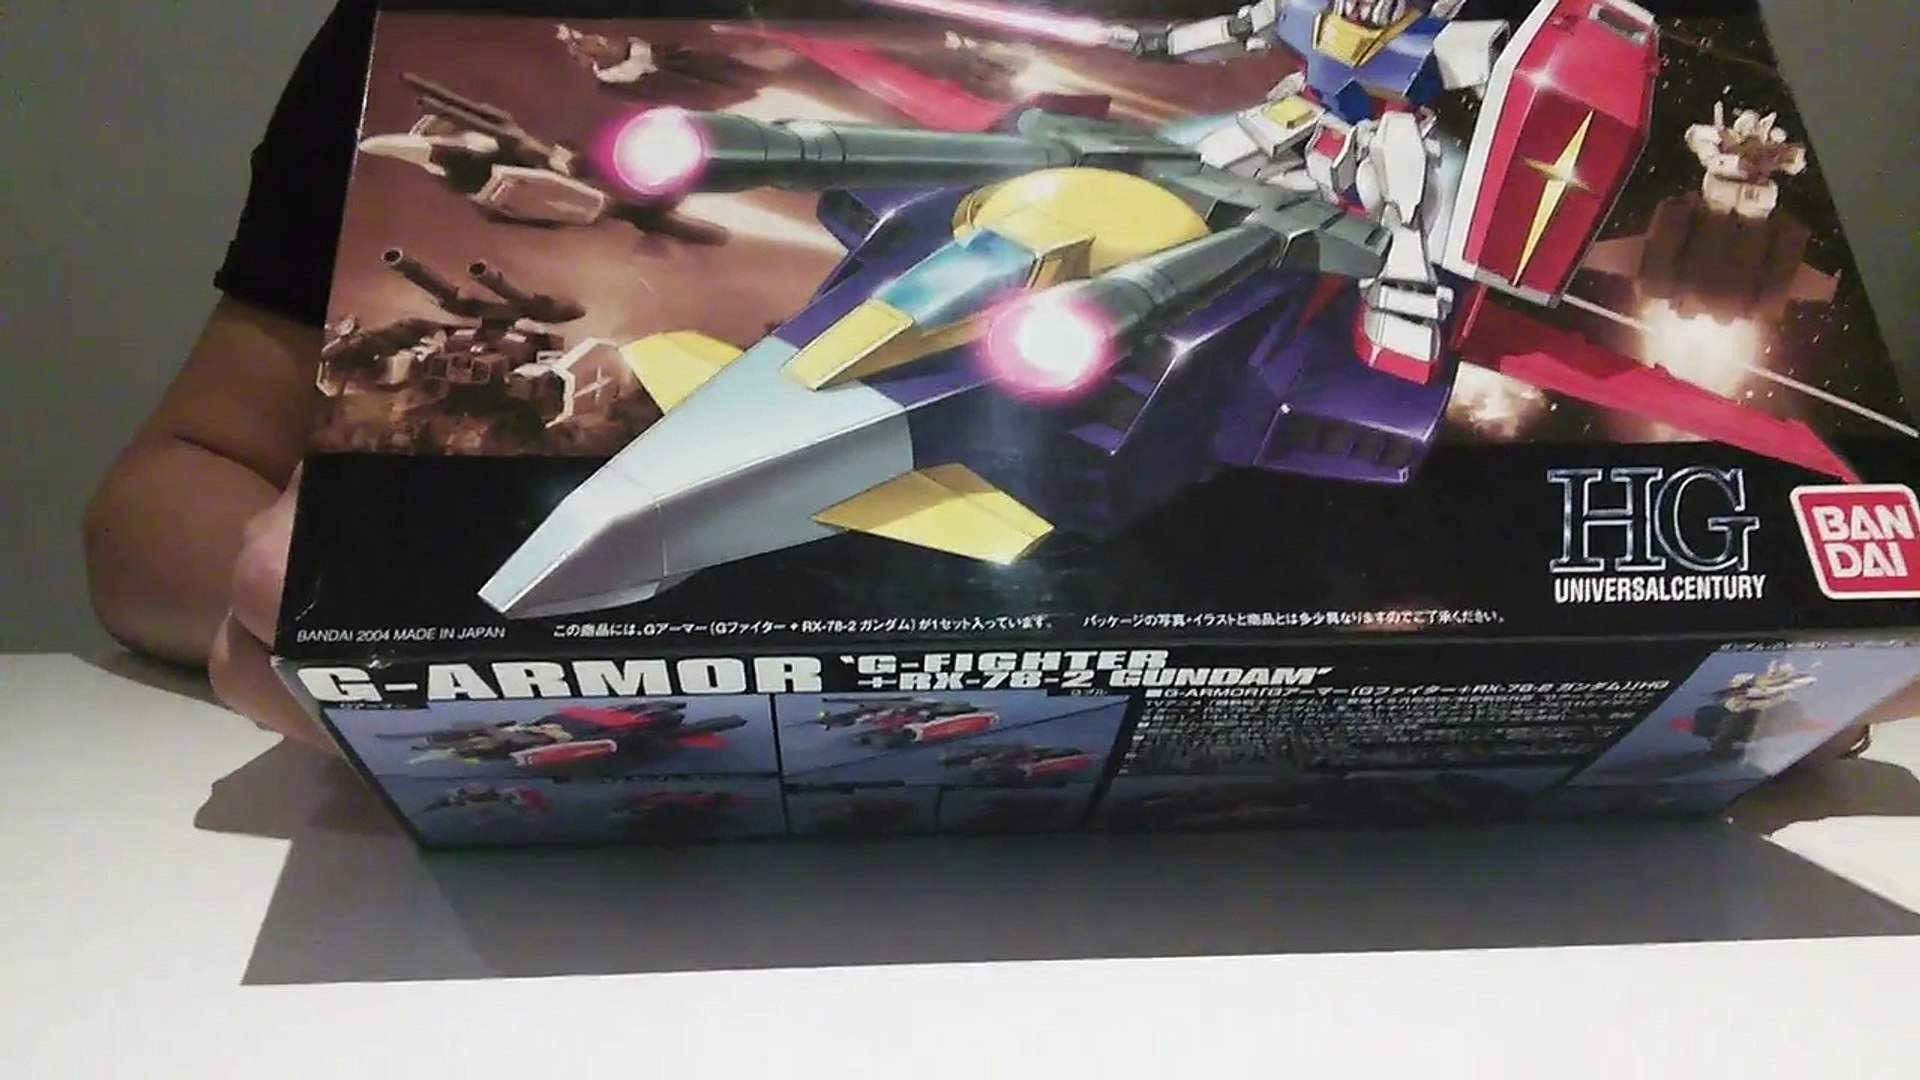 G-Armor 'G-Fighter + RX-78-2 Gundam' E.F.S.F. Prototype Supporting Fighter  Unboxing Revie